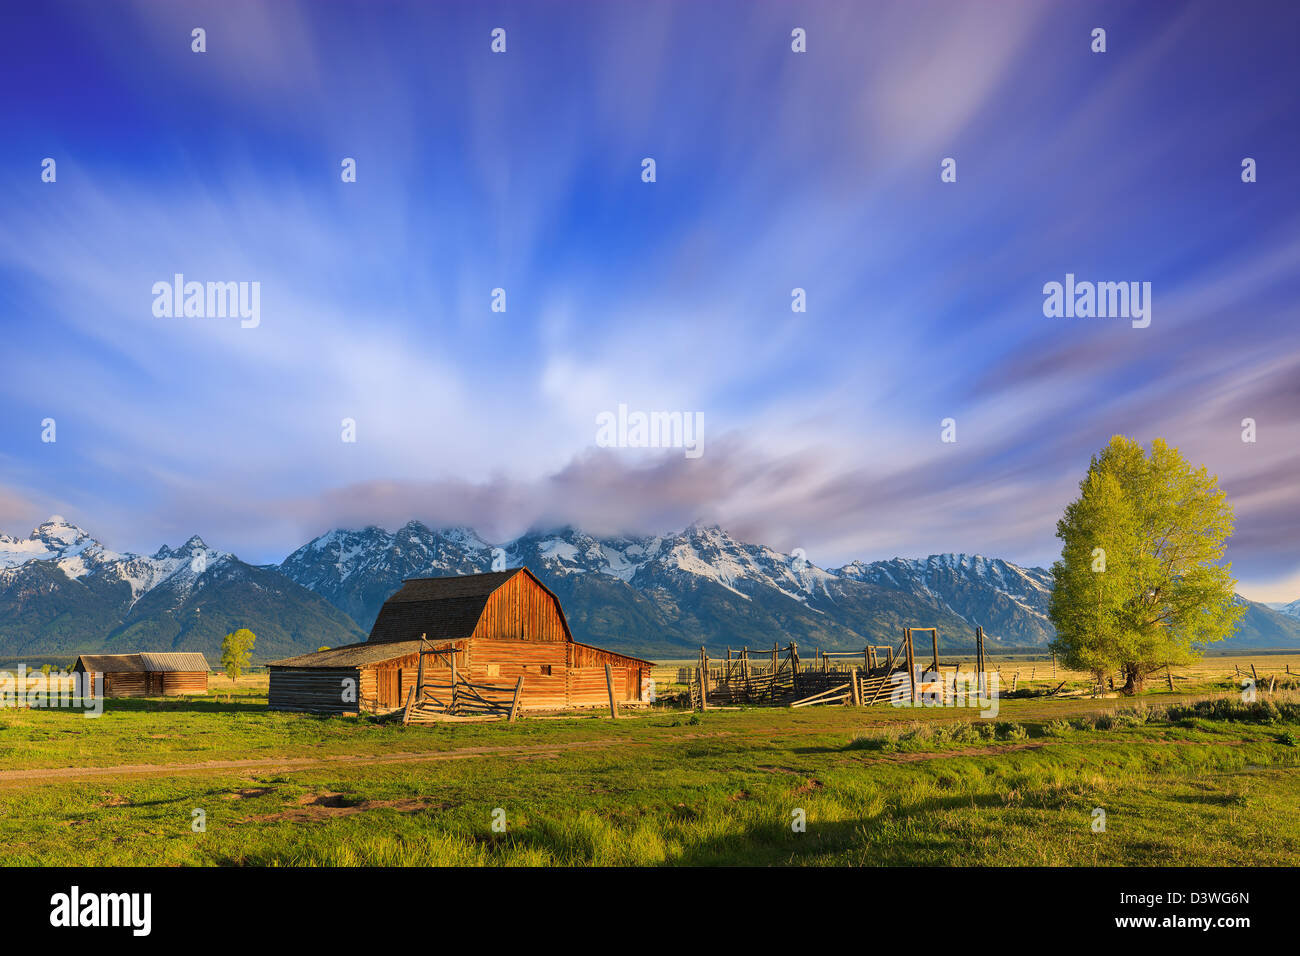 Mormon Row est une ligne de complexes de homestead le long de la route près d'Jackson-Moran l'angle Photo Stock